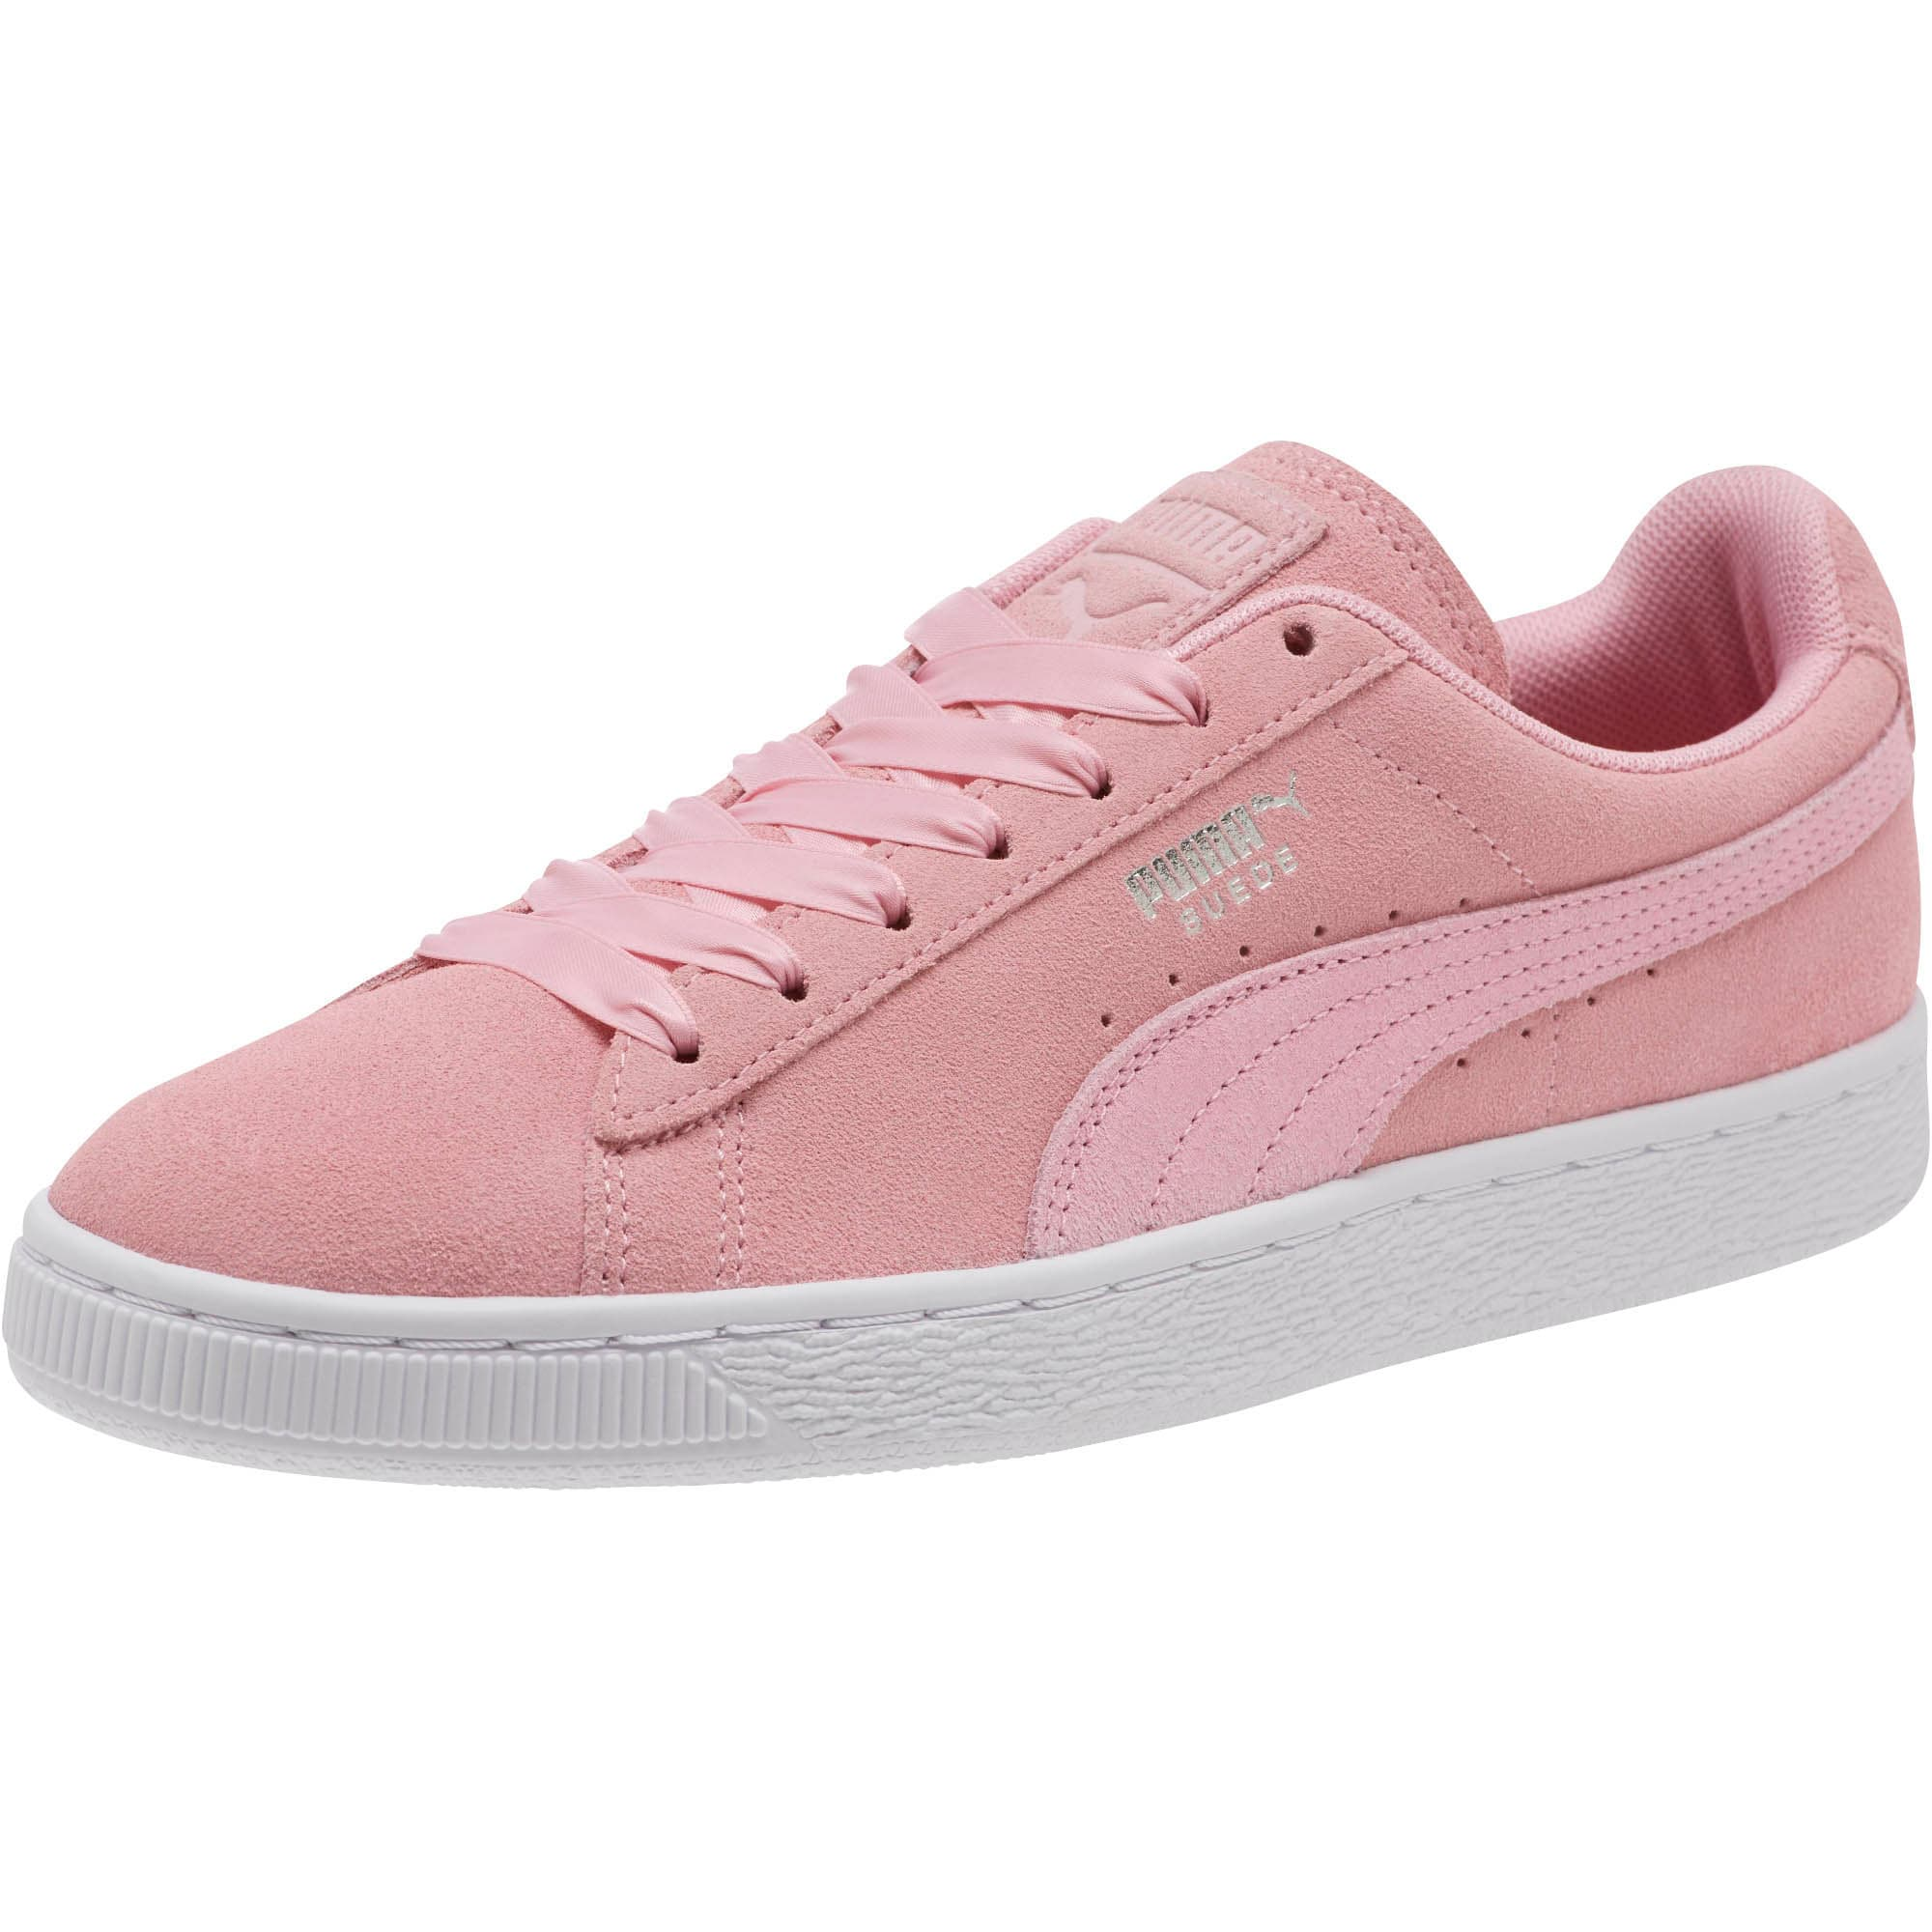 new style 72f79 a953b Suede Galaxy Women's Sneakers